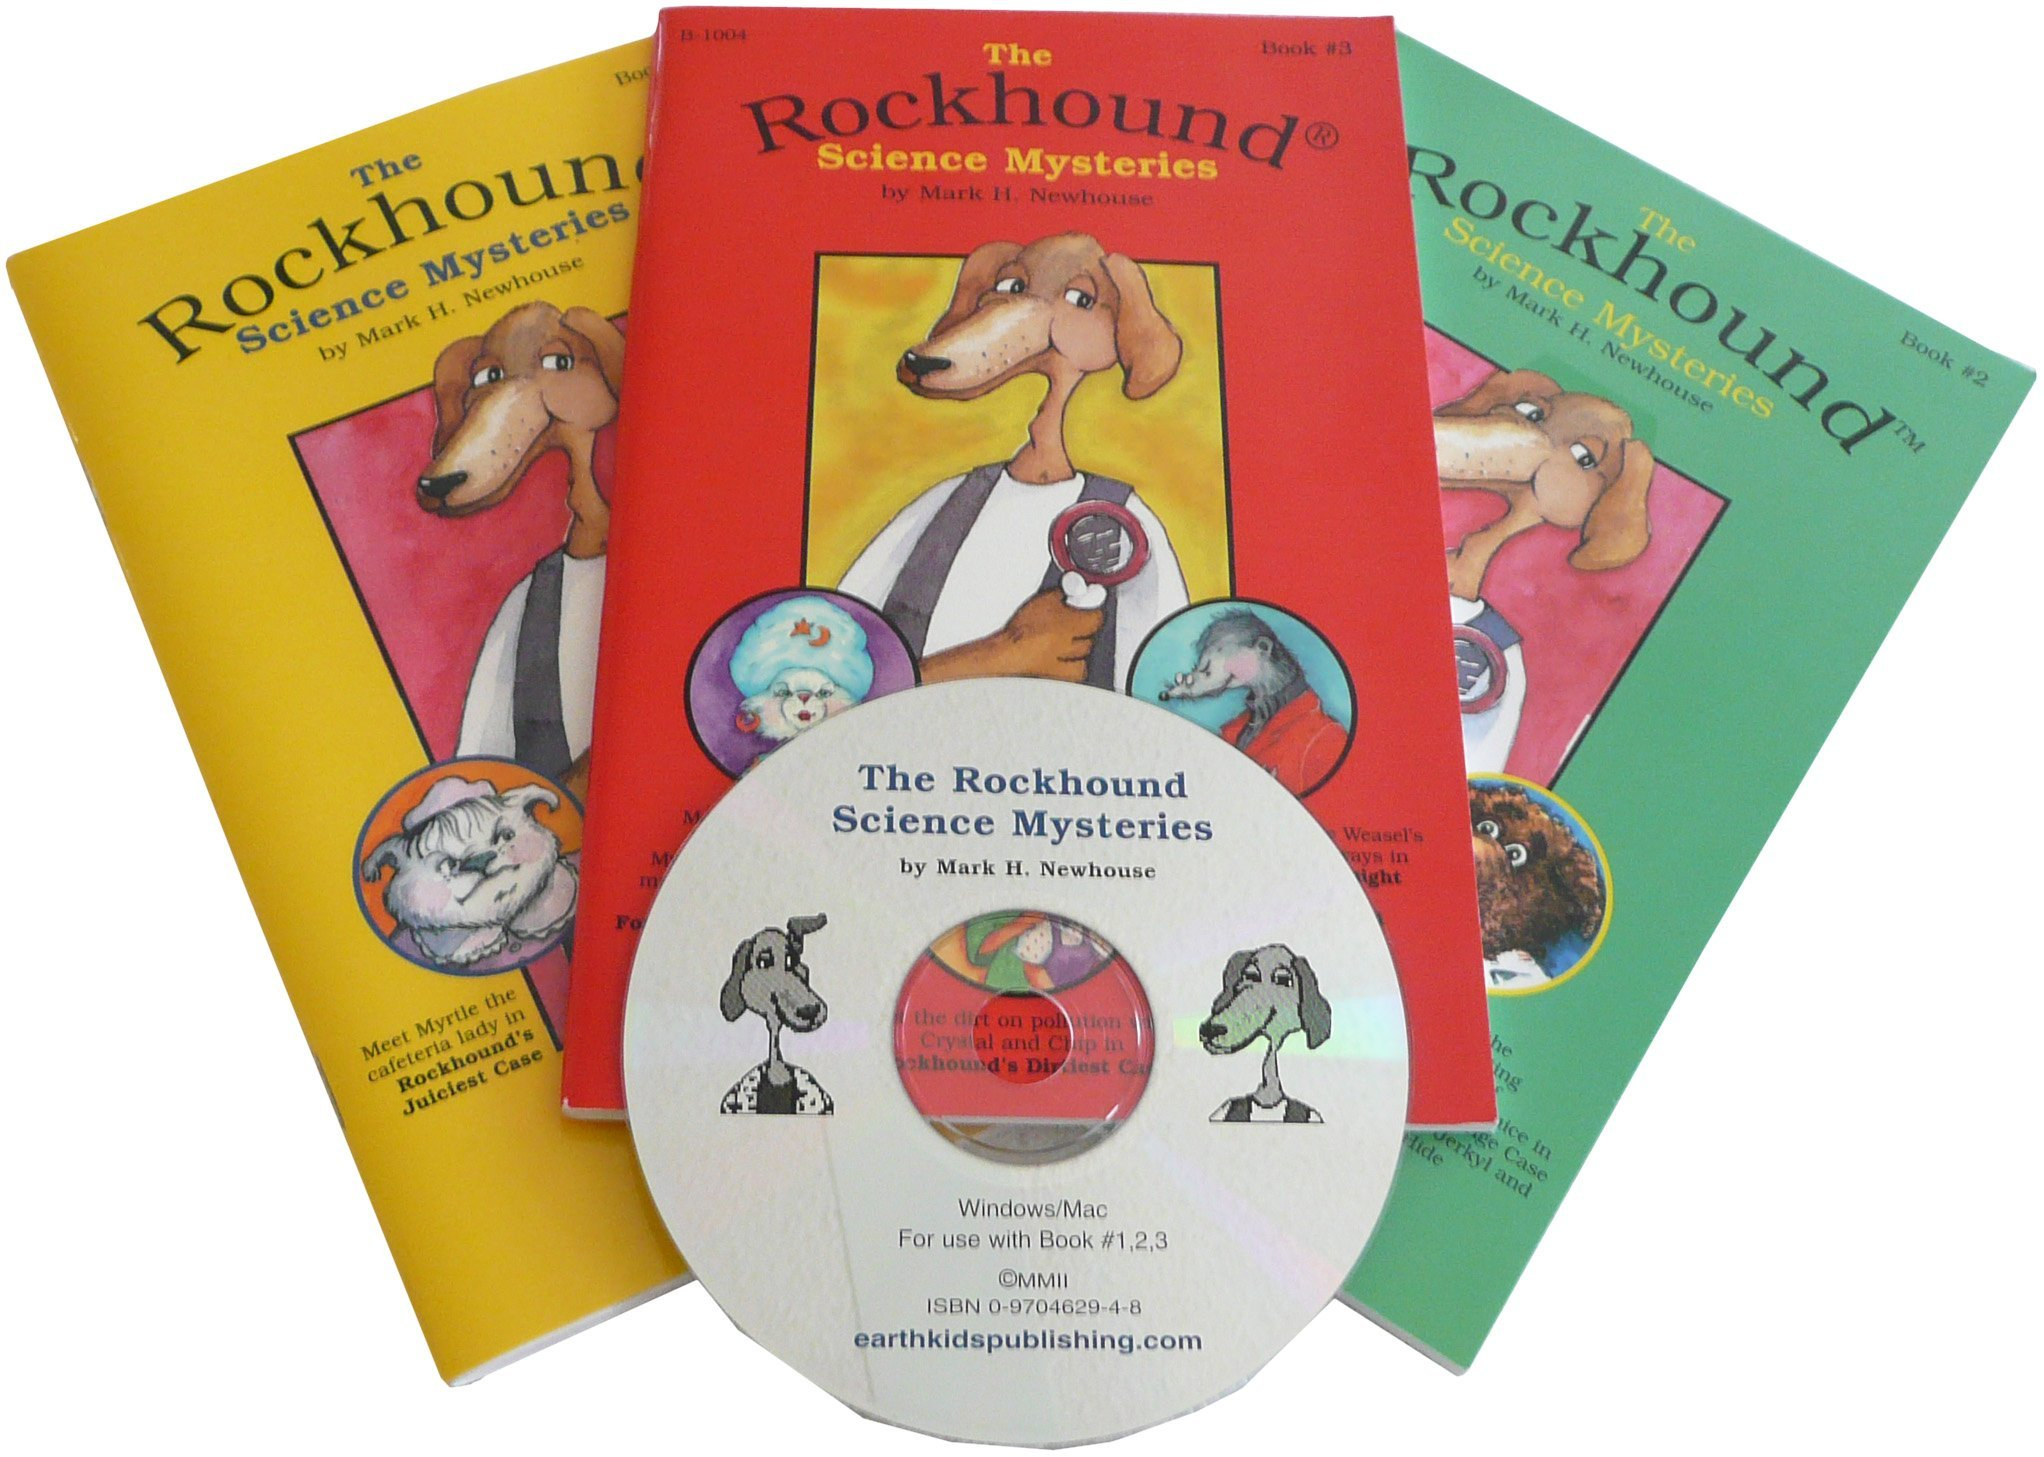 The Rockhound Science Mysteries (Book/CD-ROM Set) (The Rockhound Science Mysteries, #1)  by  Mark H. Newhouse